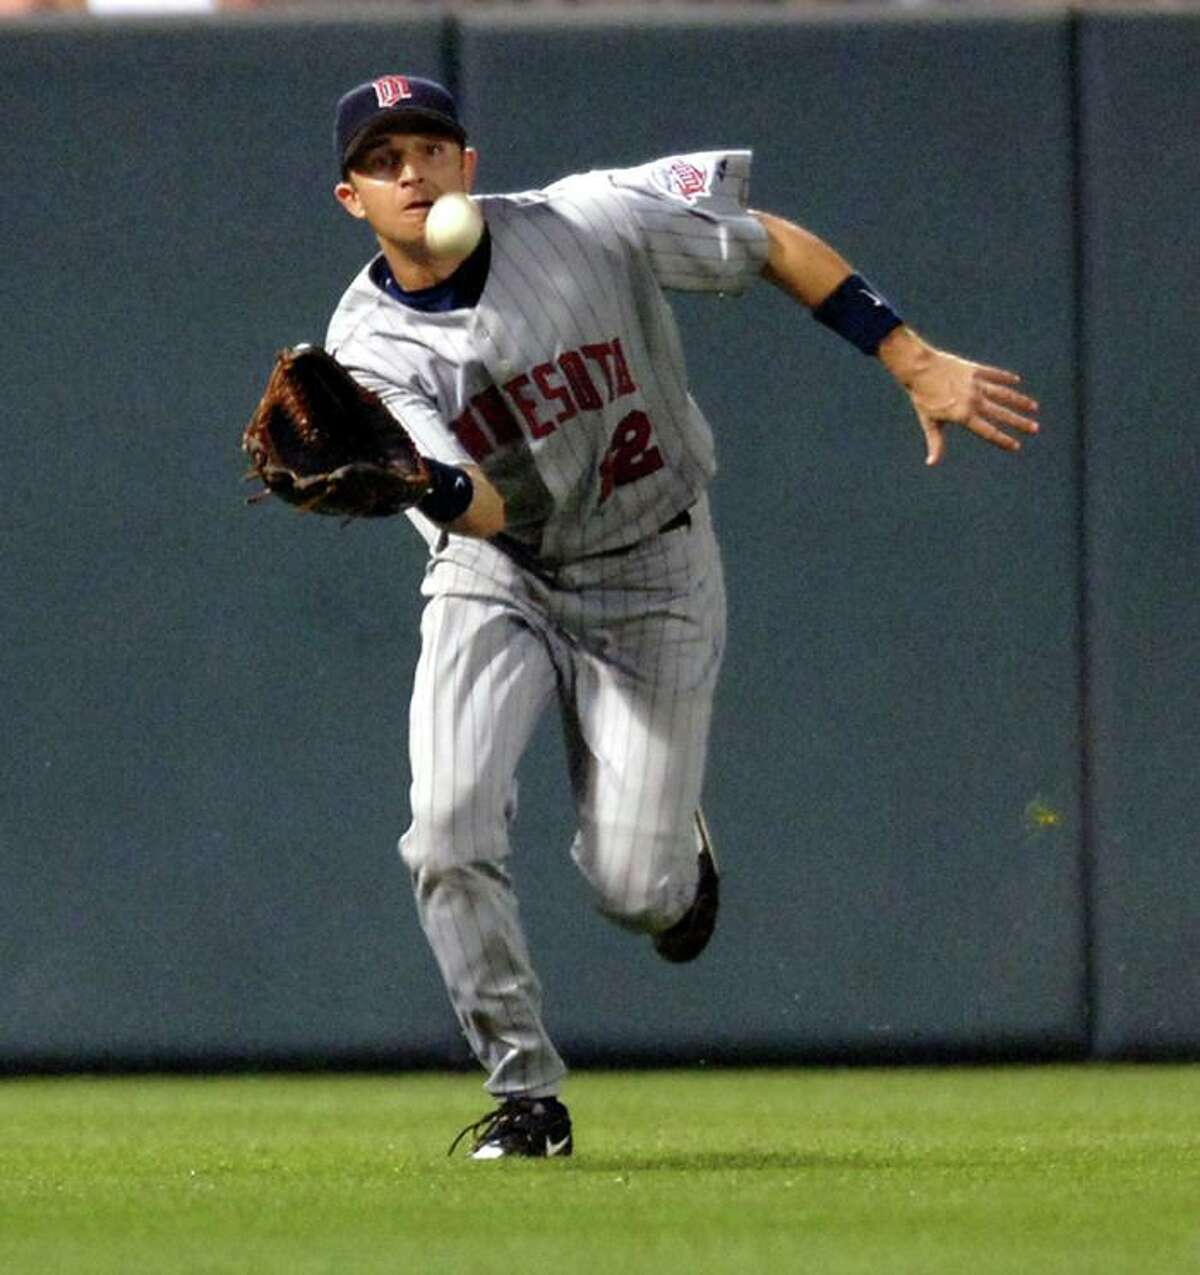 Jason Tyner attended West Brook High School in Beaumont and Texas A&M University. He has played for the New York Mets, Minnesota Twins, Cleveland Indians and Tampa Bay Devil Rays. (AP Photo/Gail Burton)